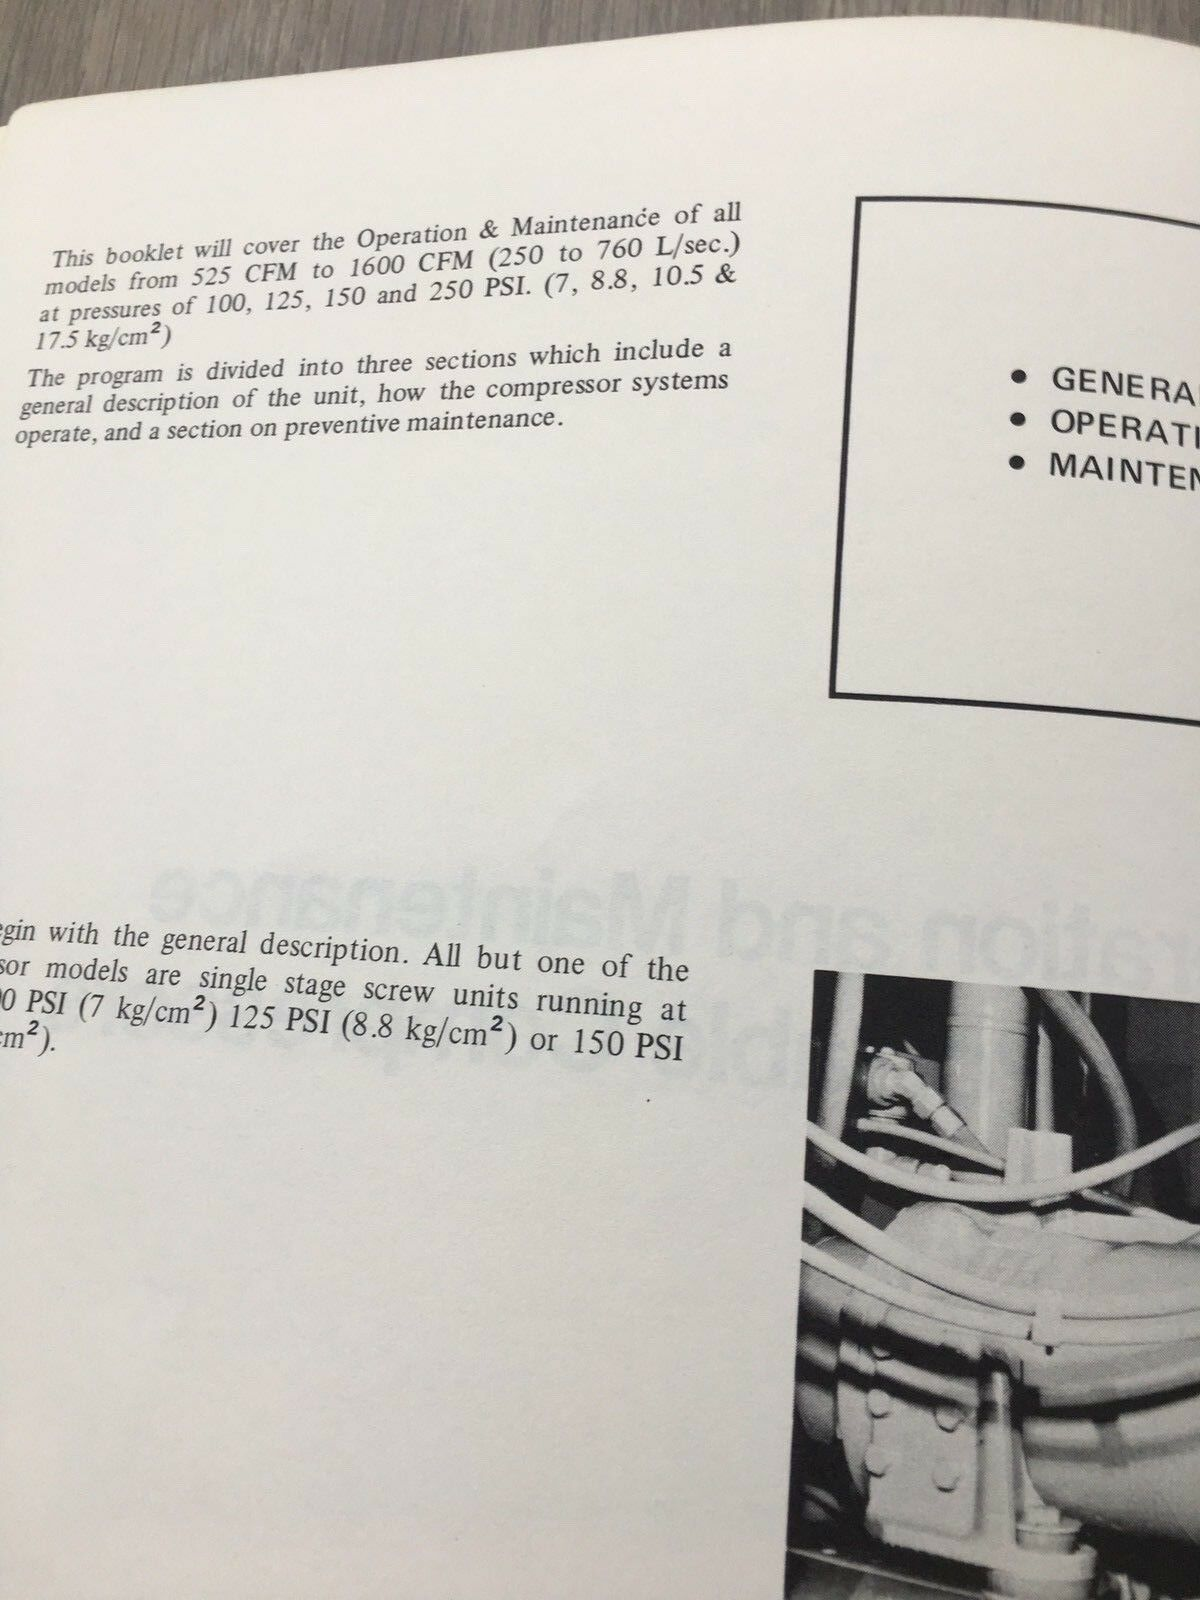 2 of 6 Ingersoll Rand Large Air Compressor Operation & Maintenance Manual  Inc Vat 3 of 6 Ingersoll Rand ...